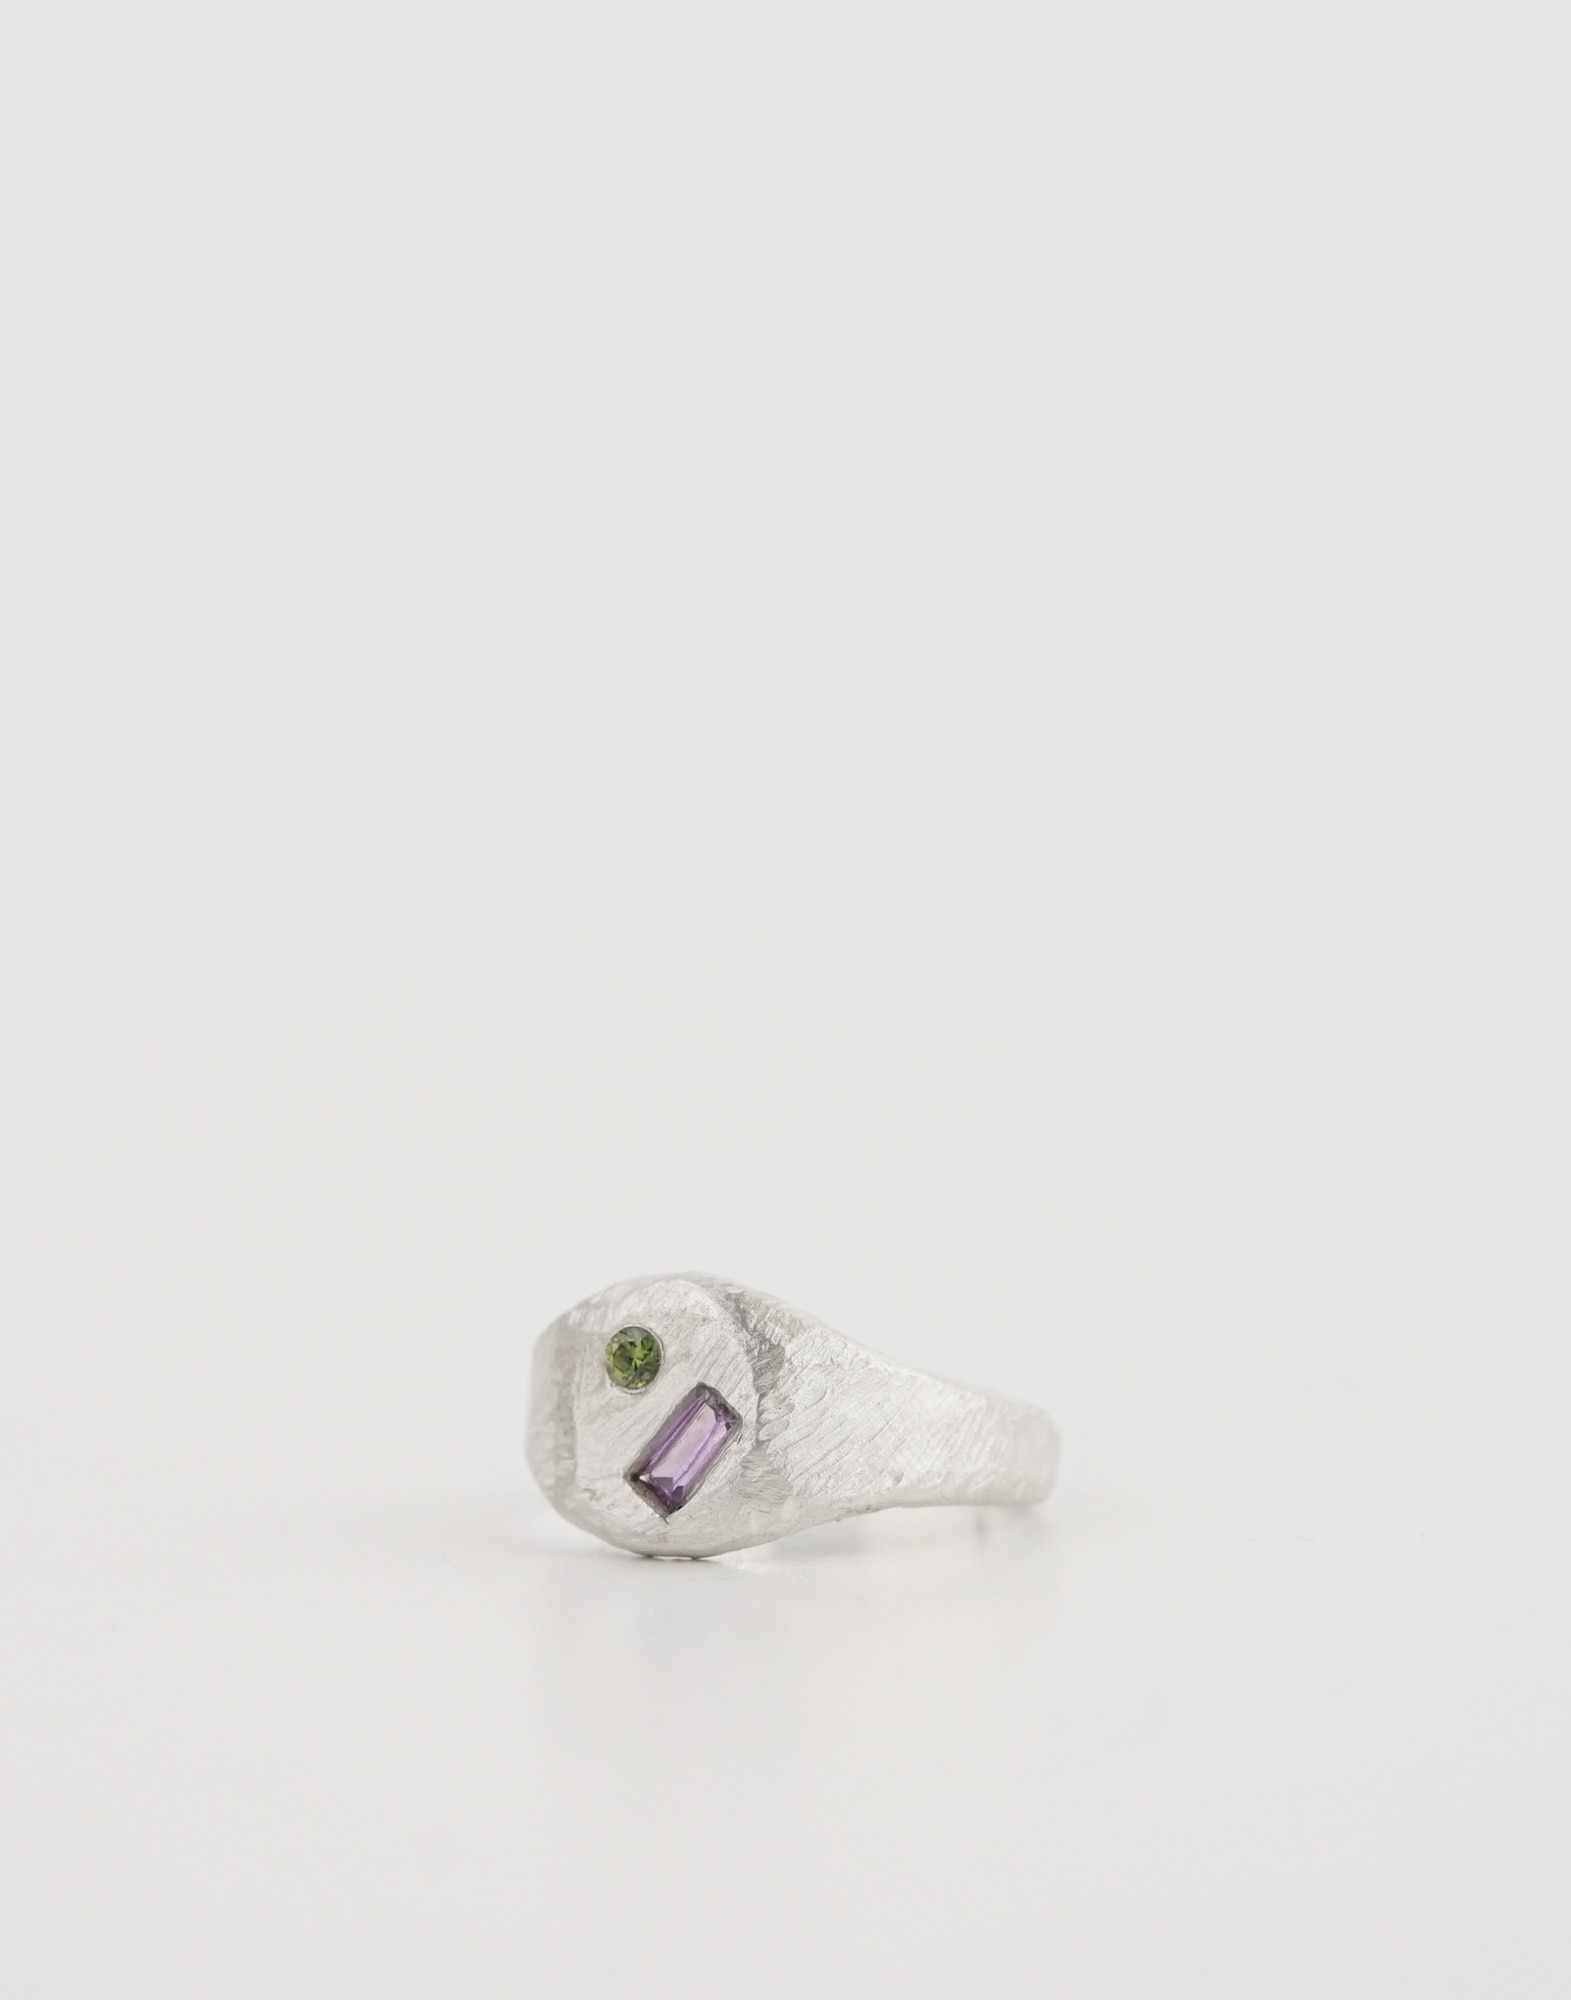 Signet Ring(Olive Purple Crystal)